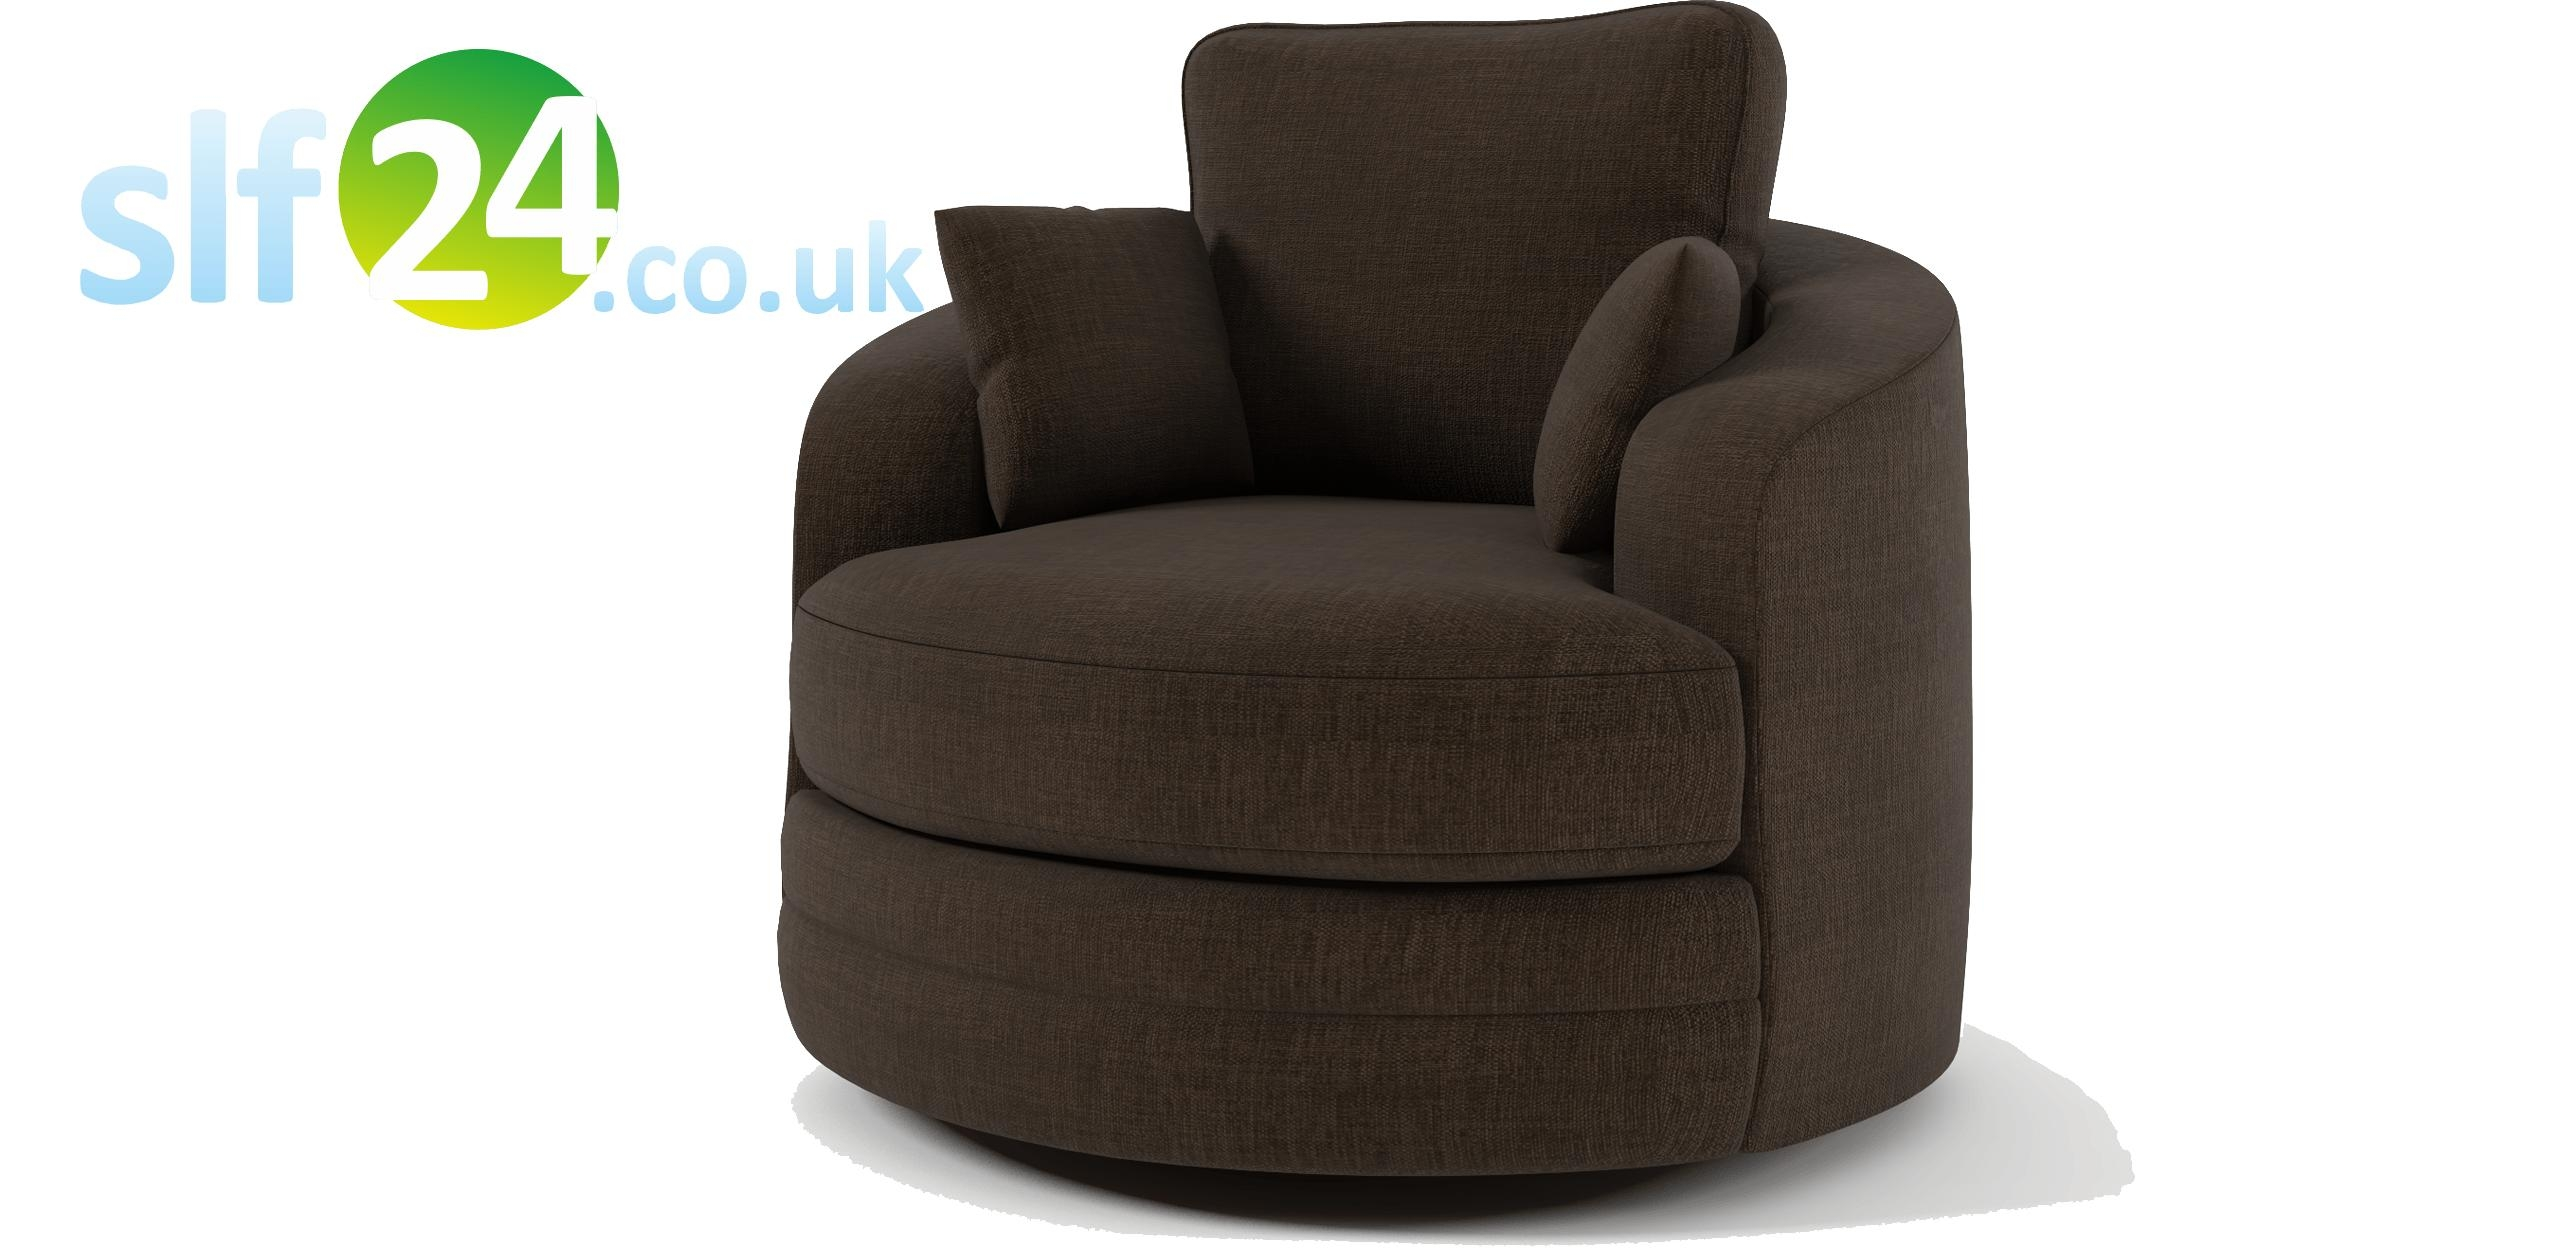 Cuddler Swivel Sofa Chair 75 With Cuddler Swivel Sofa Chair With Regard To Cuddler Swivel Sofa Chairs (View 18 of 20)